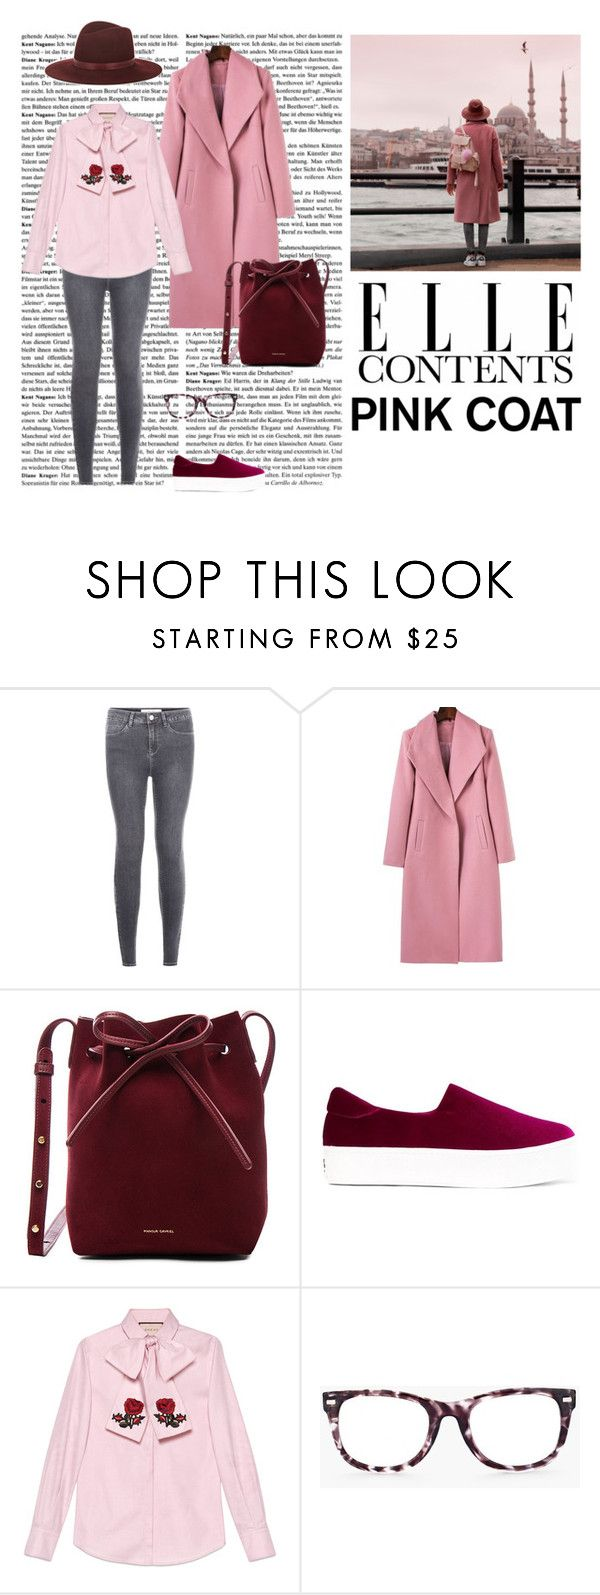 """Pink coat vol.2"" by dorey on Polyvore featuring New Look, Mansur Gavriel, Opening Ceremony, Gucci, Chico's and Janessa Leone"